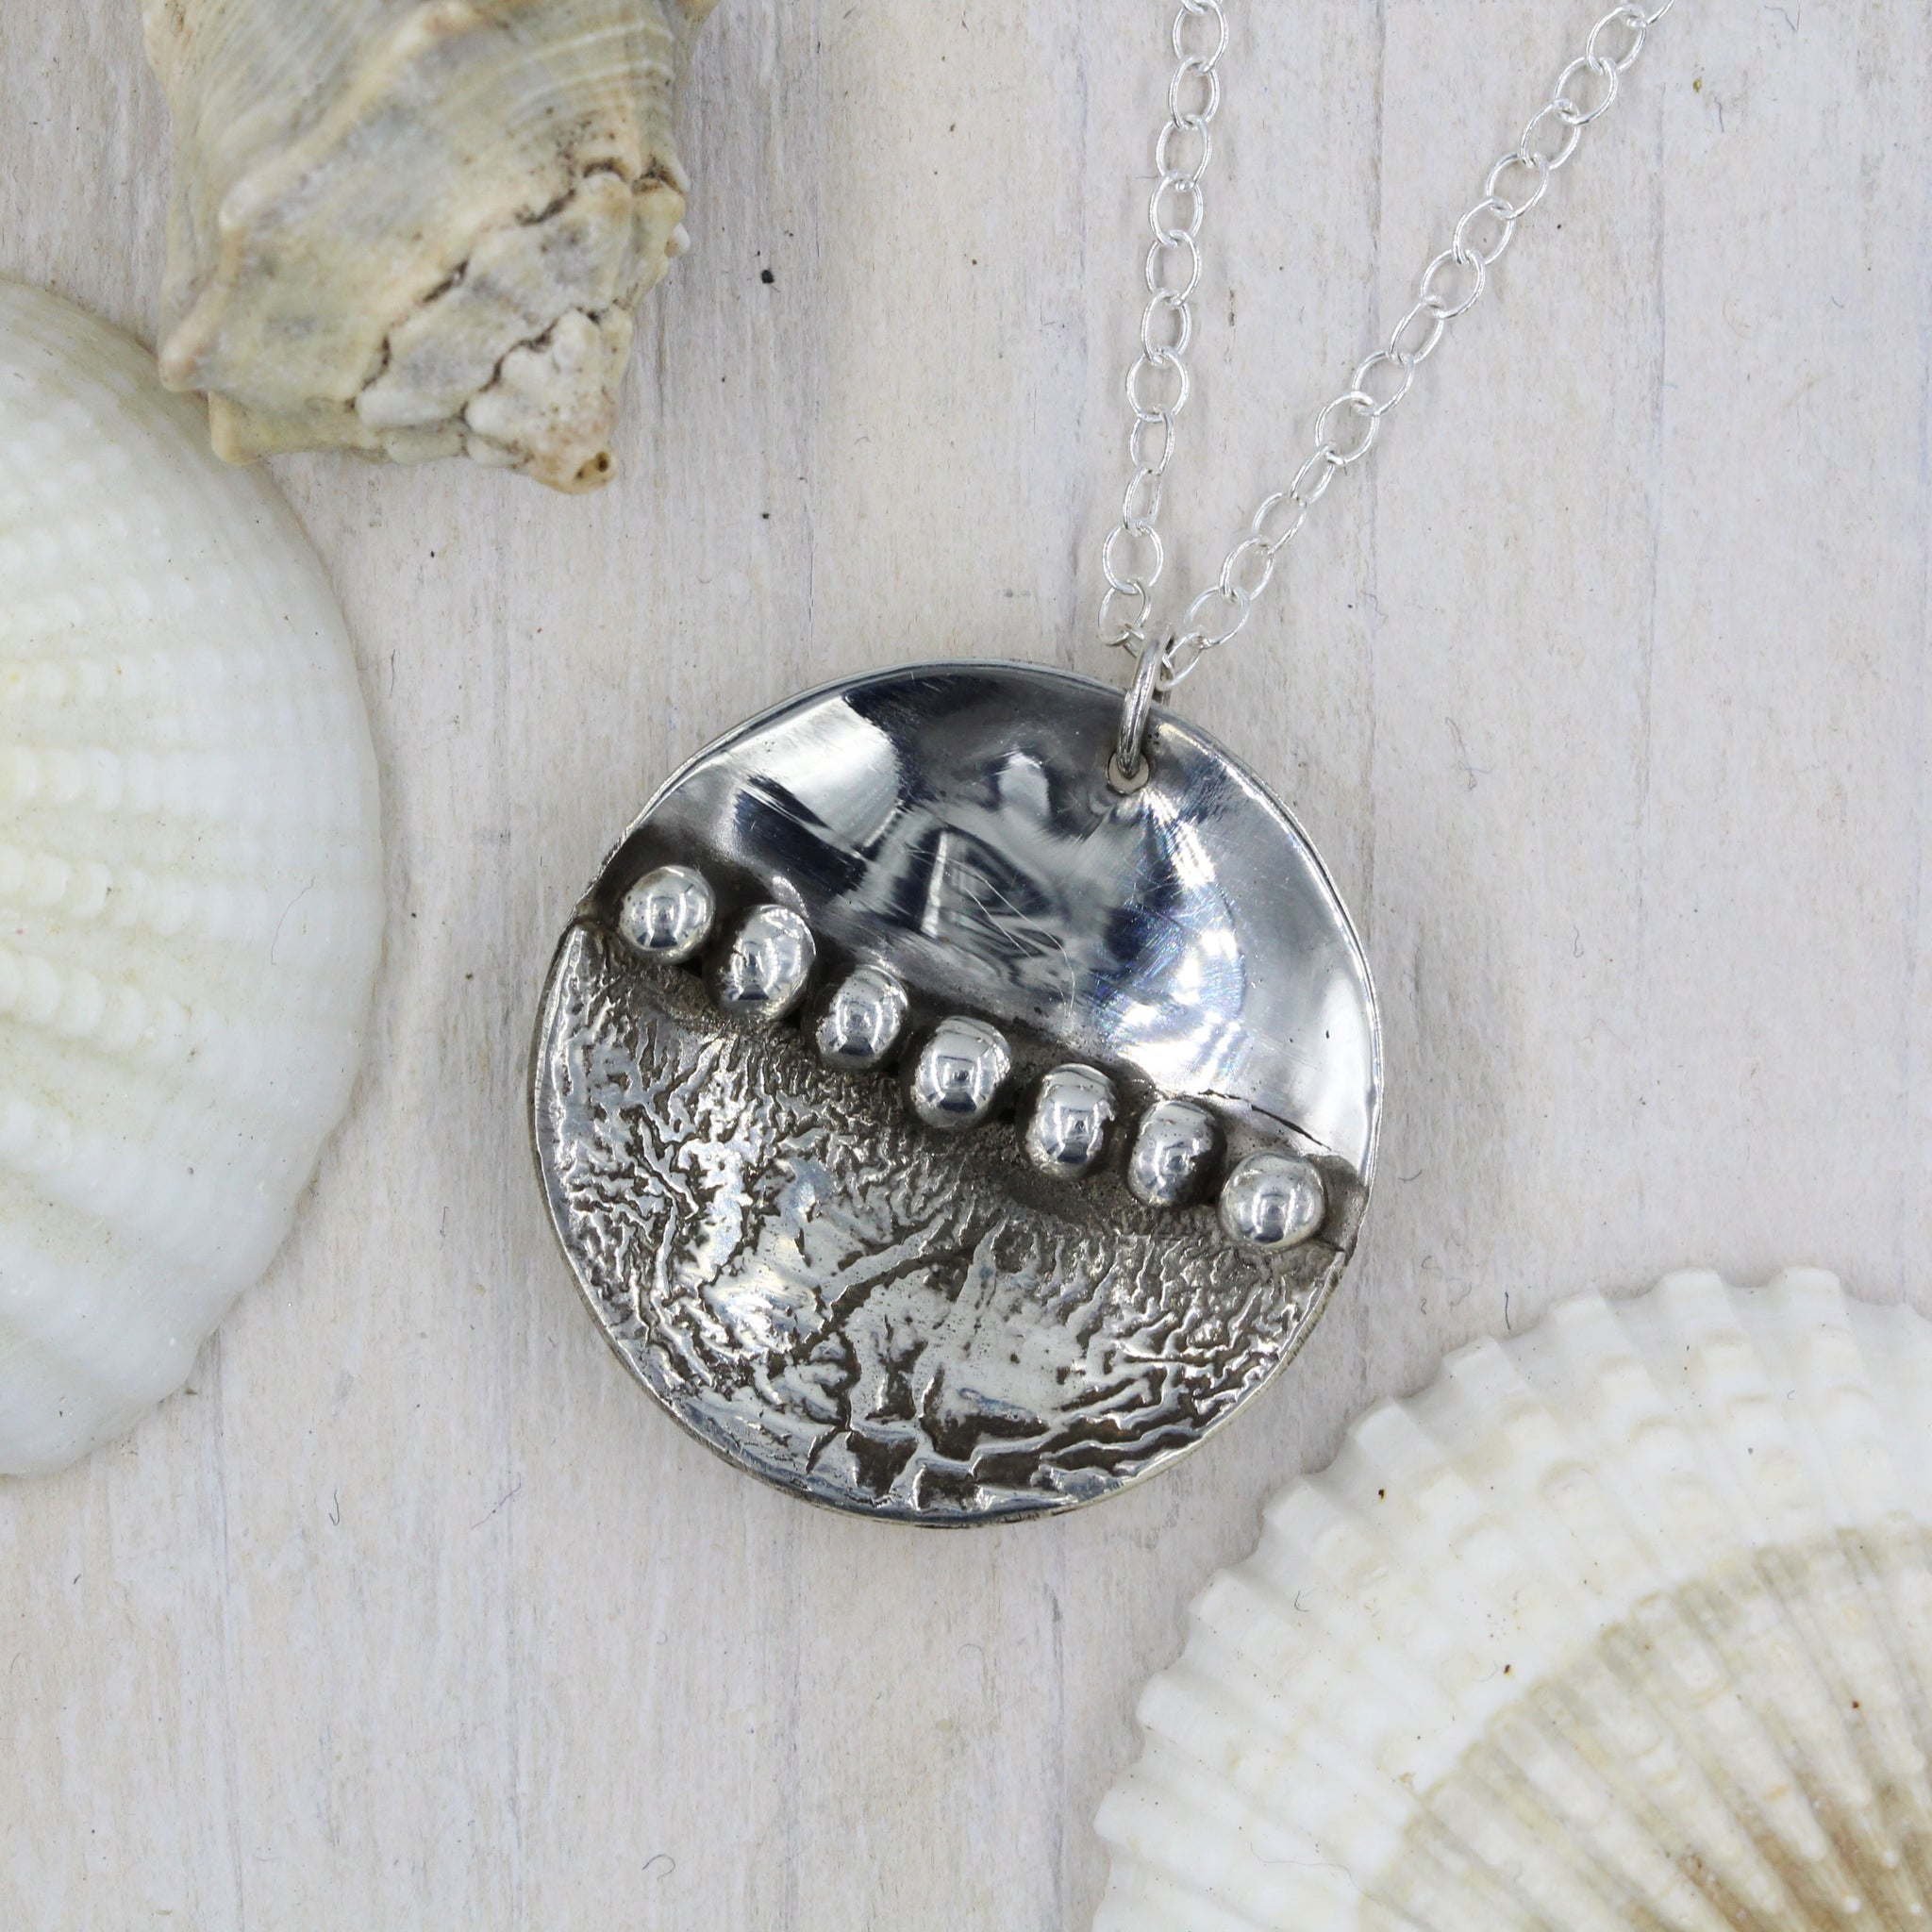 Seascape pendant, handmade in sterling silver by Gemma Tremayne Jewellery